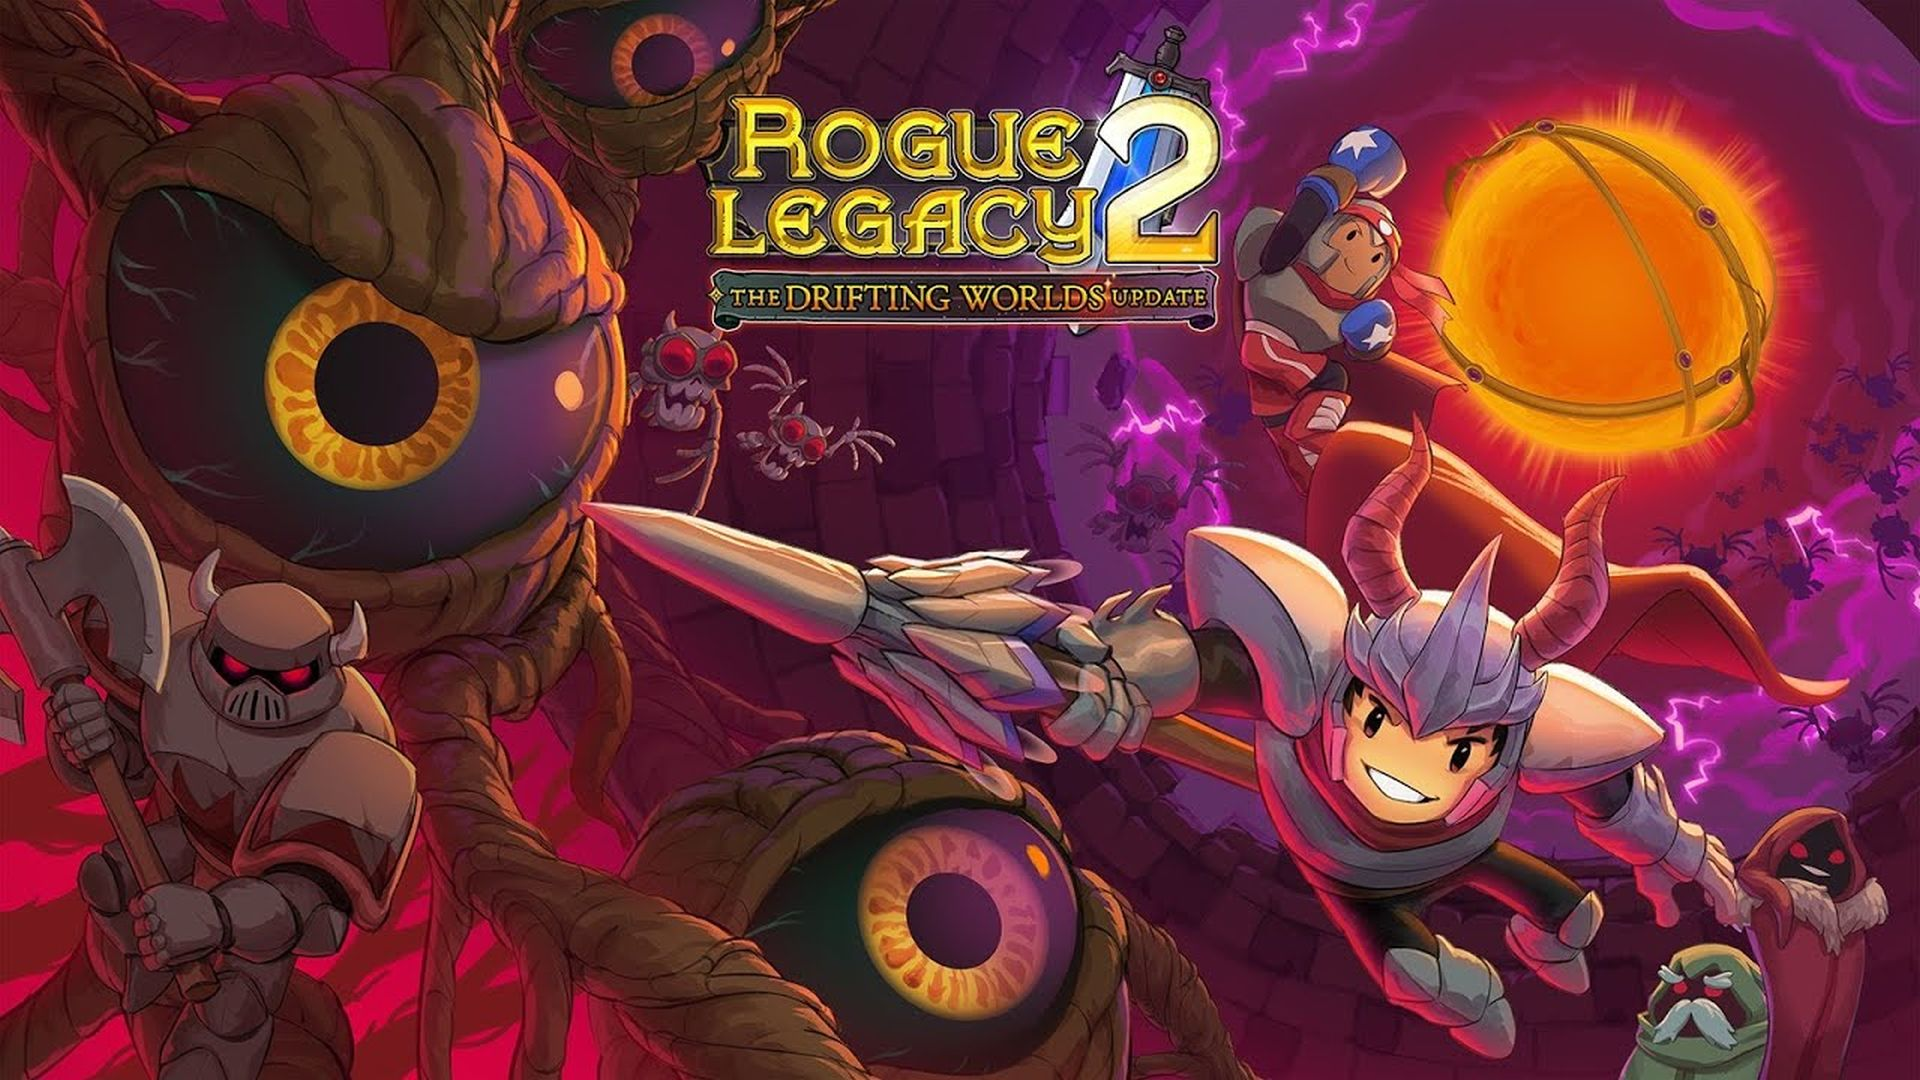 Rogue Legacy 2 The Drifting Worlds